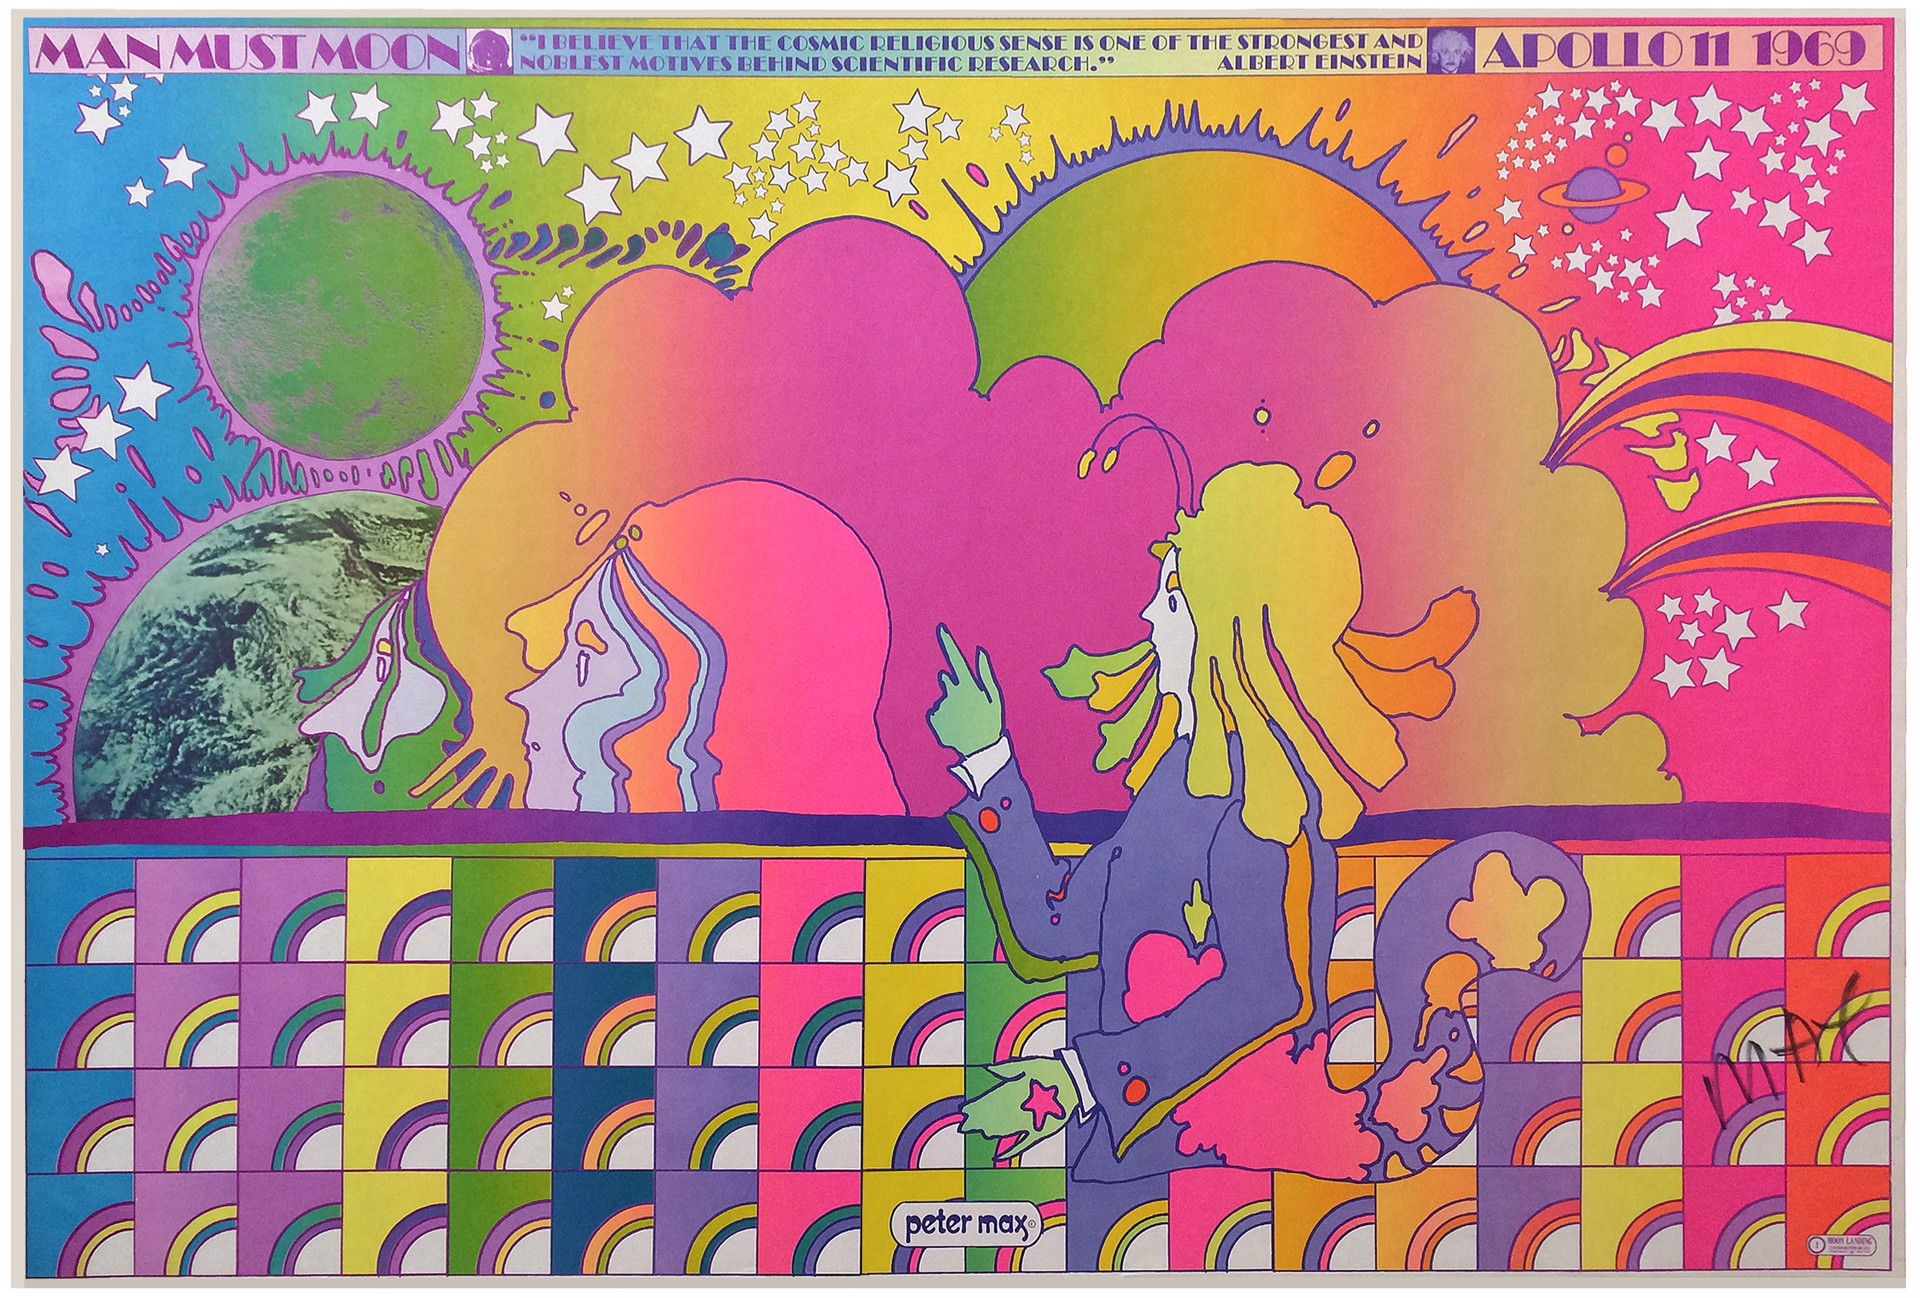 Man Must Moon by Peter Max